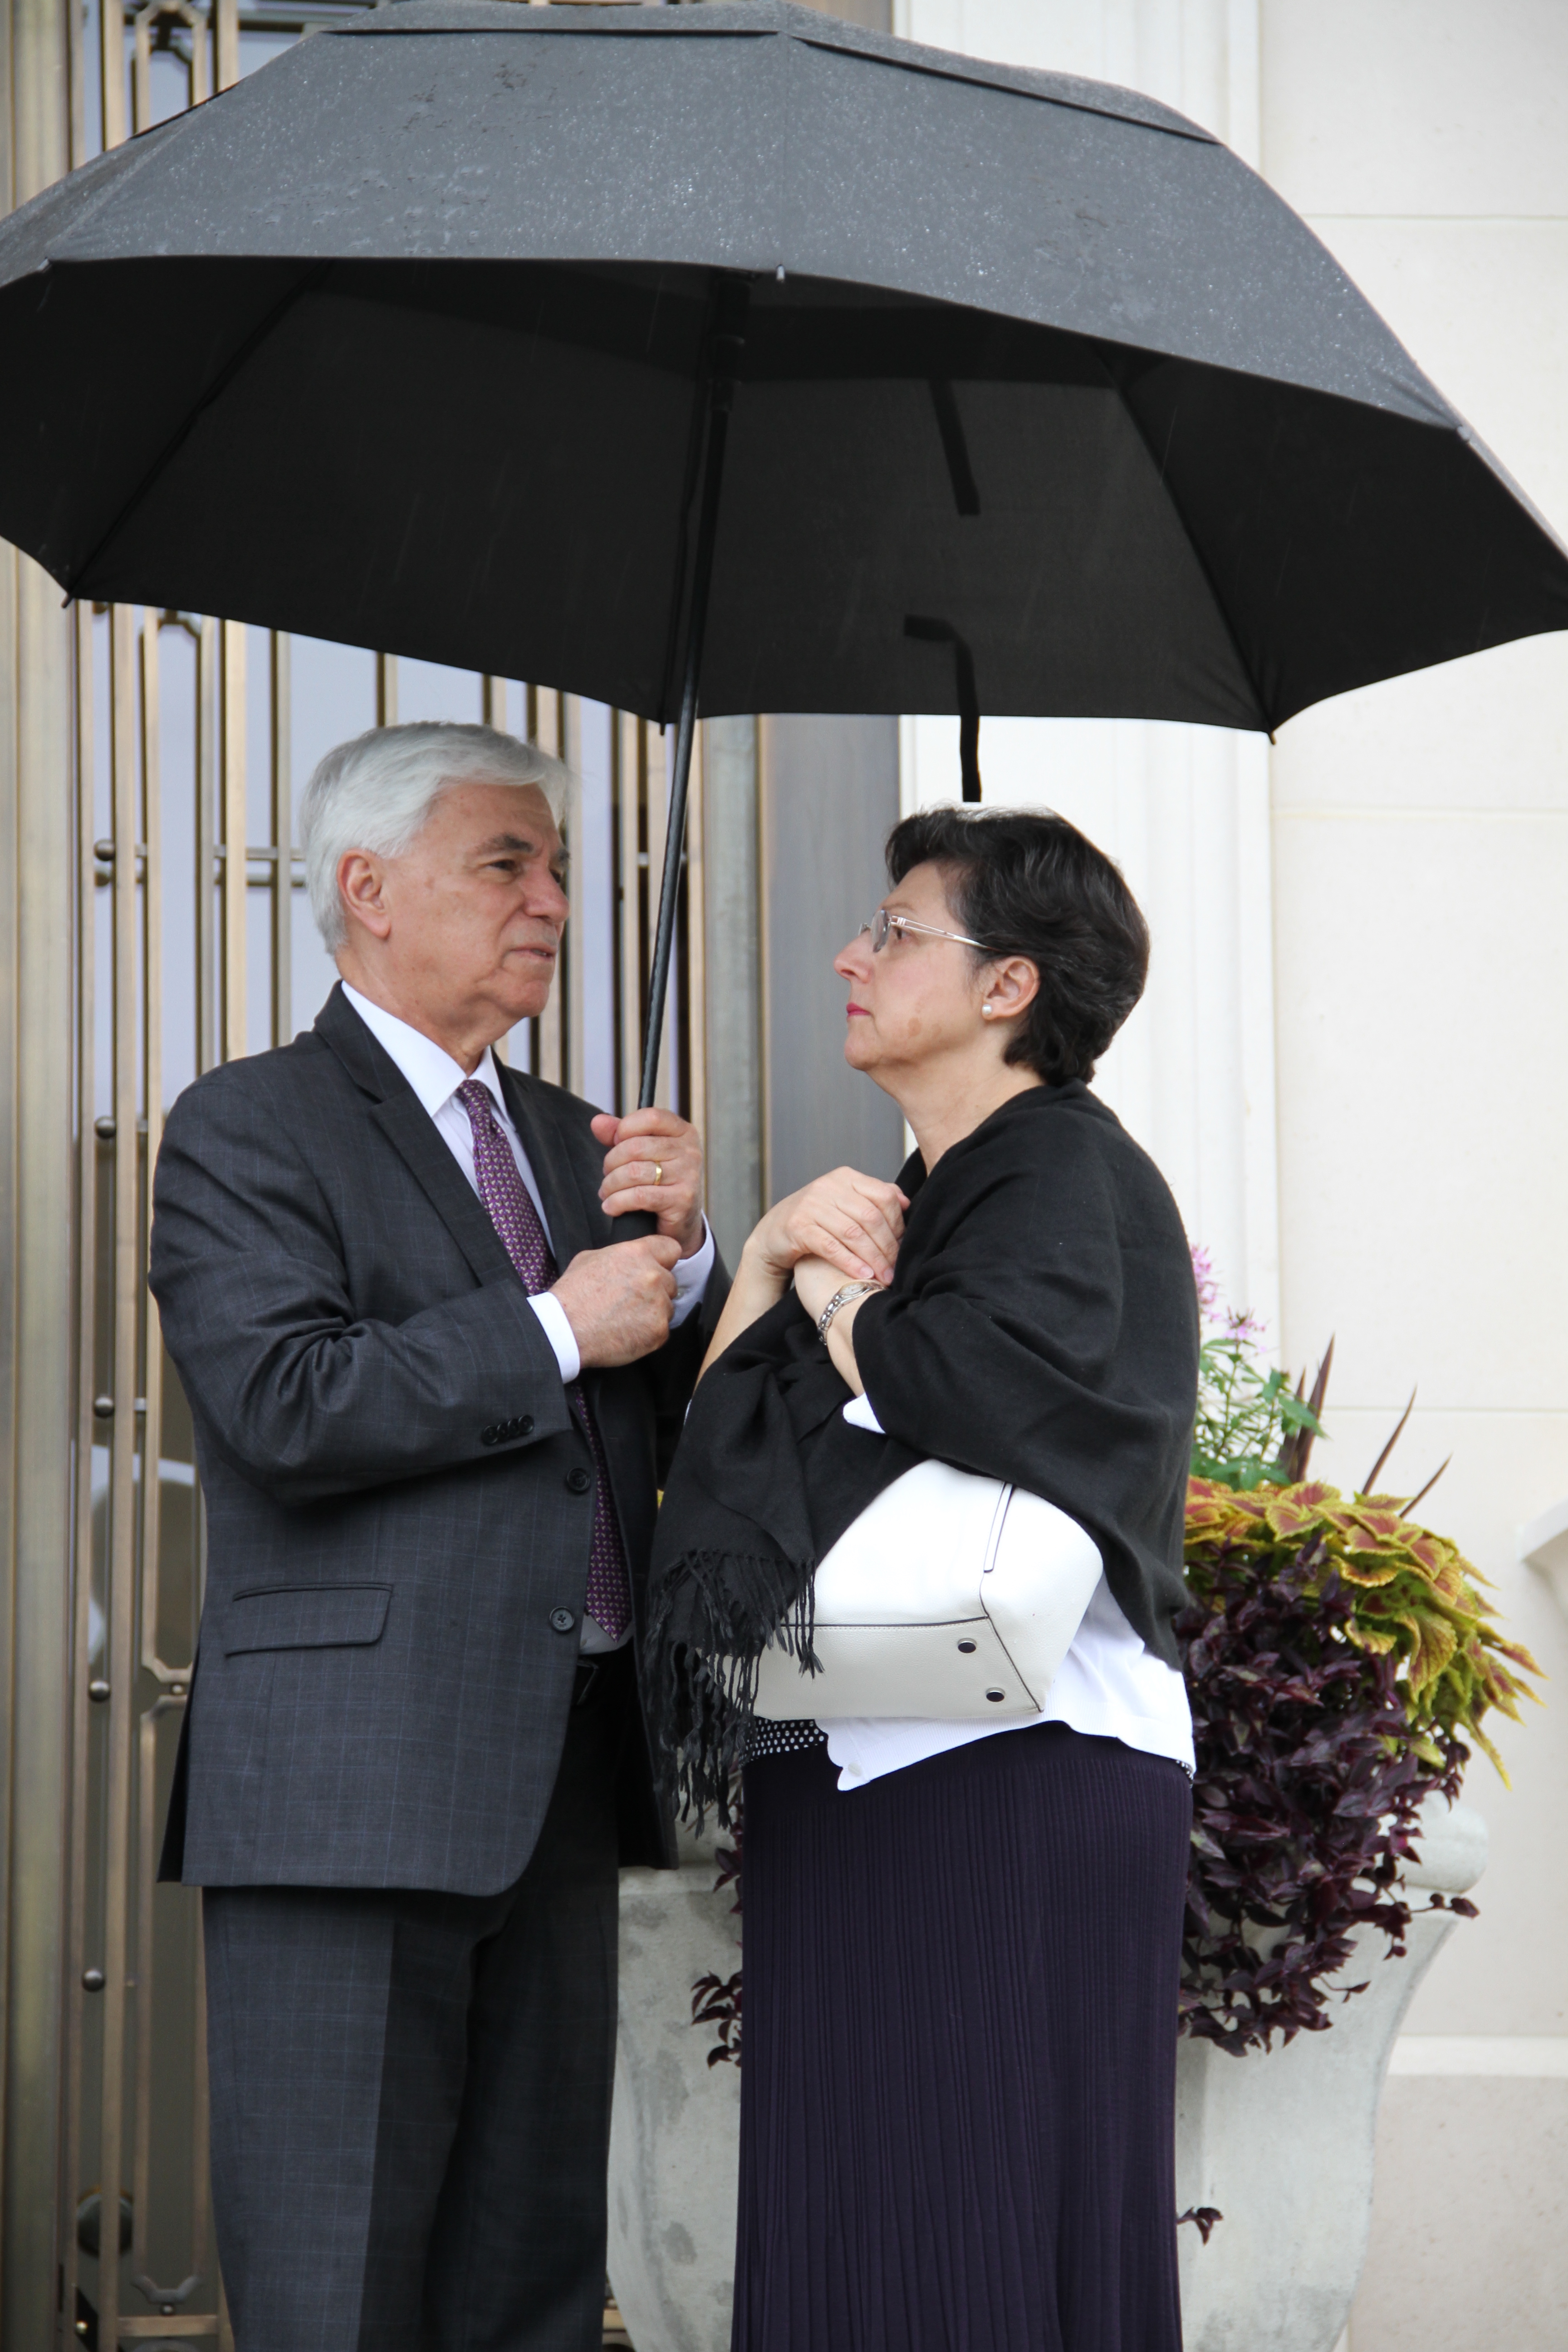 Elder Claudio R. M. Costa and Sister Margareth Costa stand under an umbrella near the entrance to the Memphis Tennessee Temple on May 4, 2019.